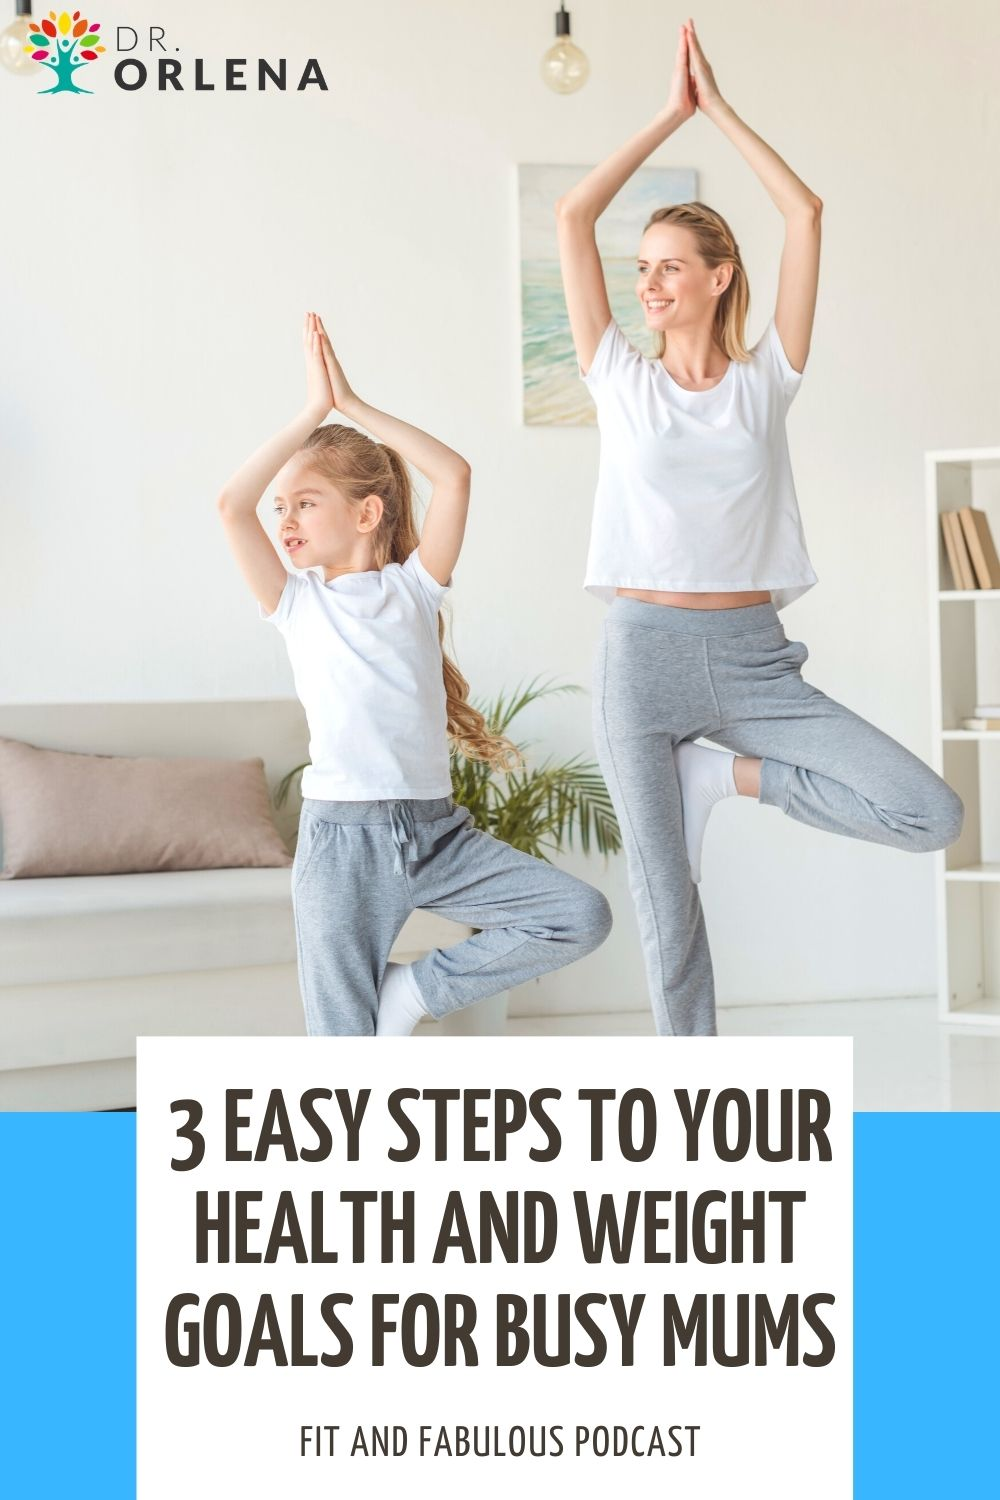 A woman doing yoga poses with her daughter in their living room #weightloss #momweightloss #momhealth #loseweight #healthyliving #wellness #exercise